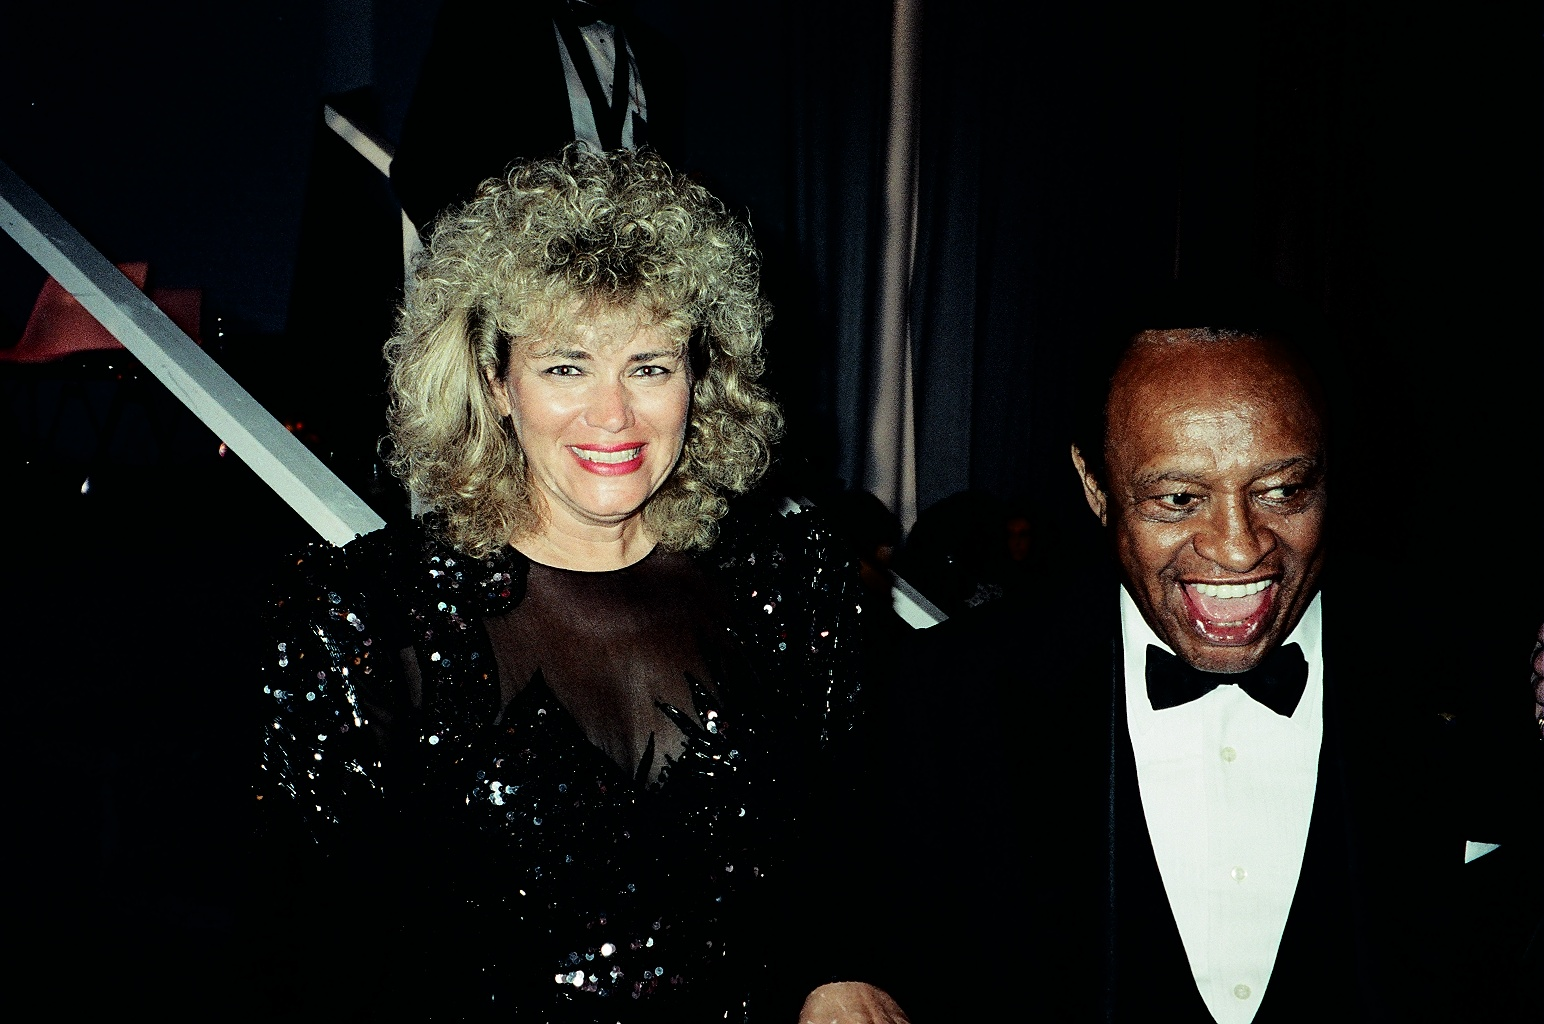 With Lionel Hampton after the Presidential Inauguration performance